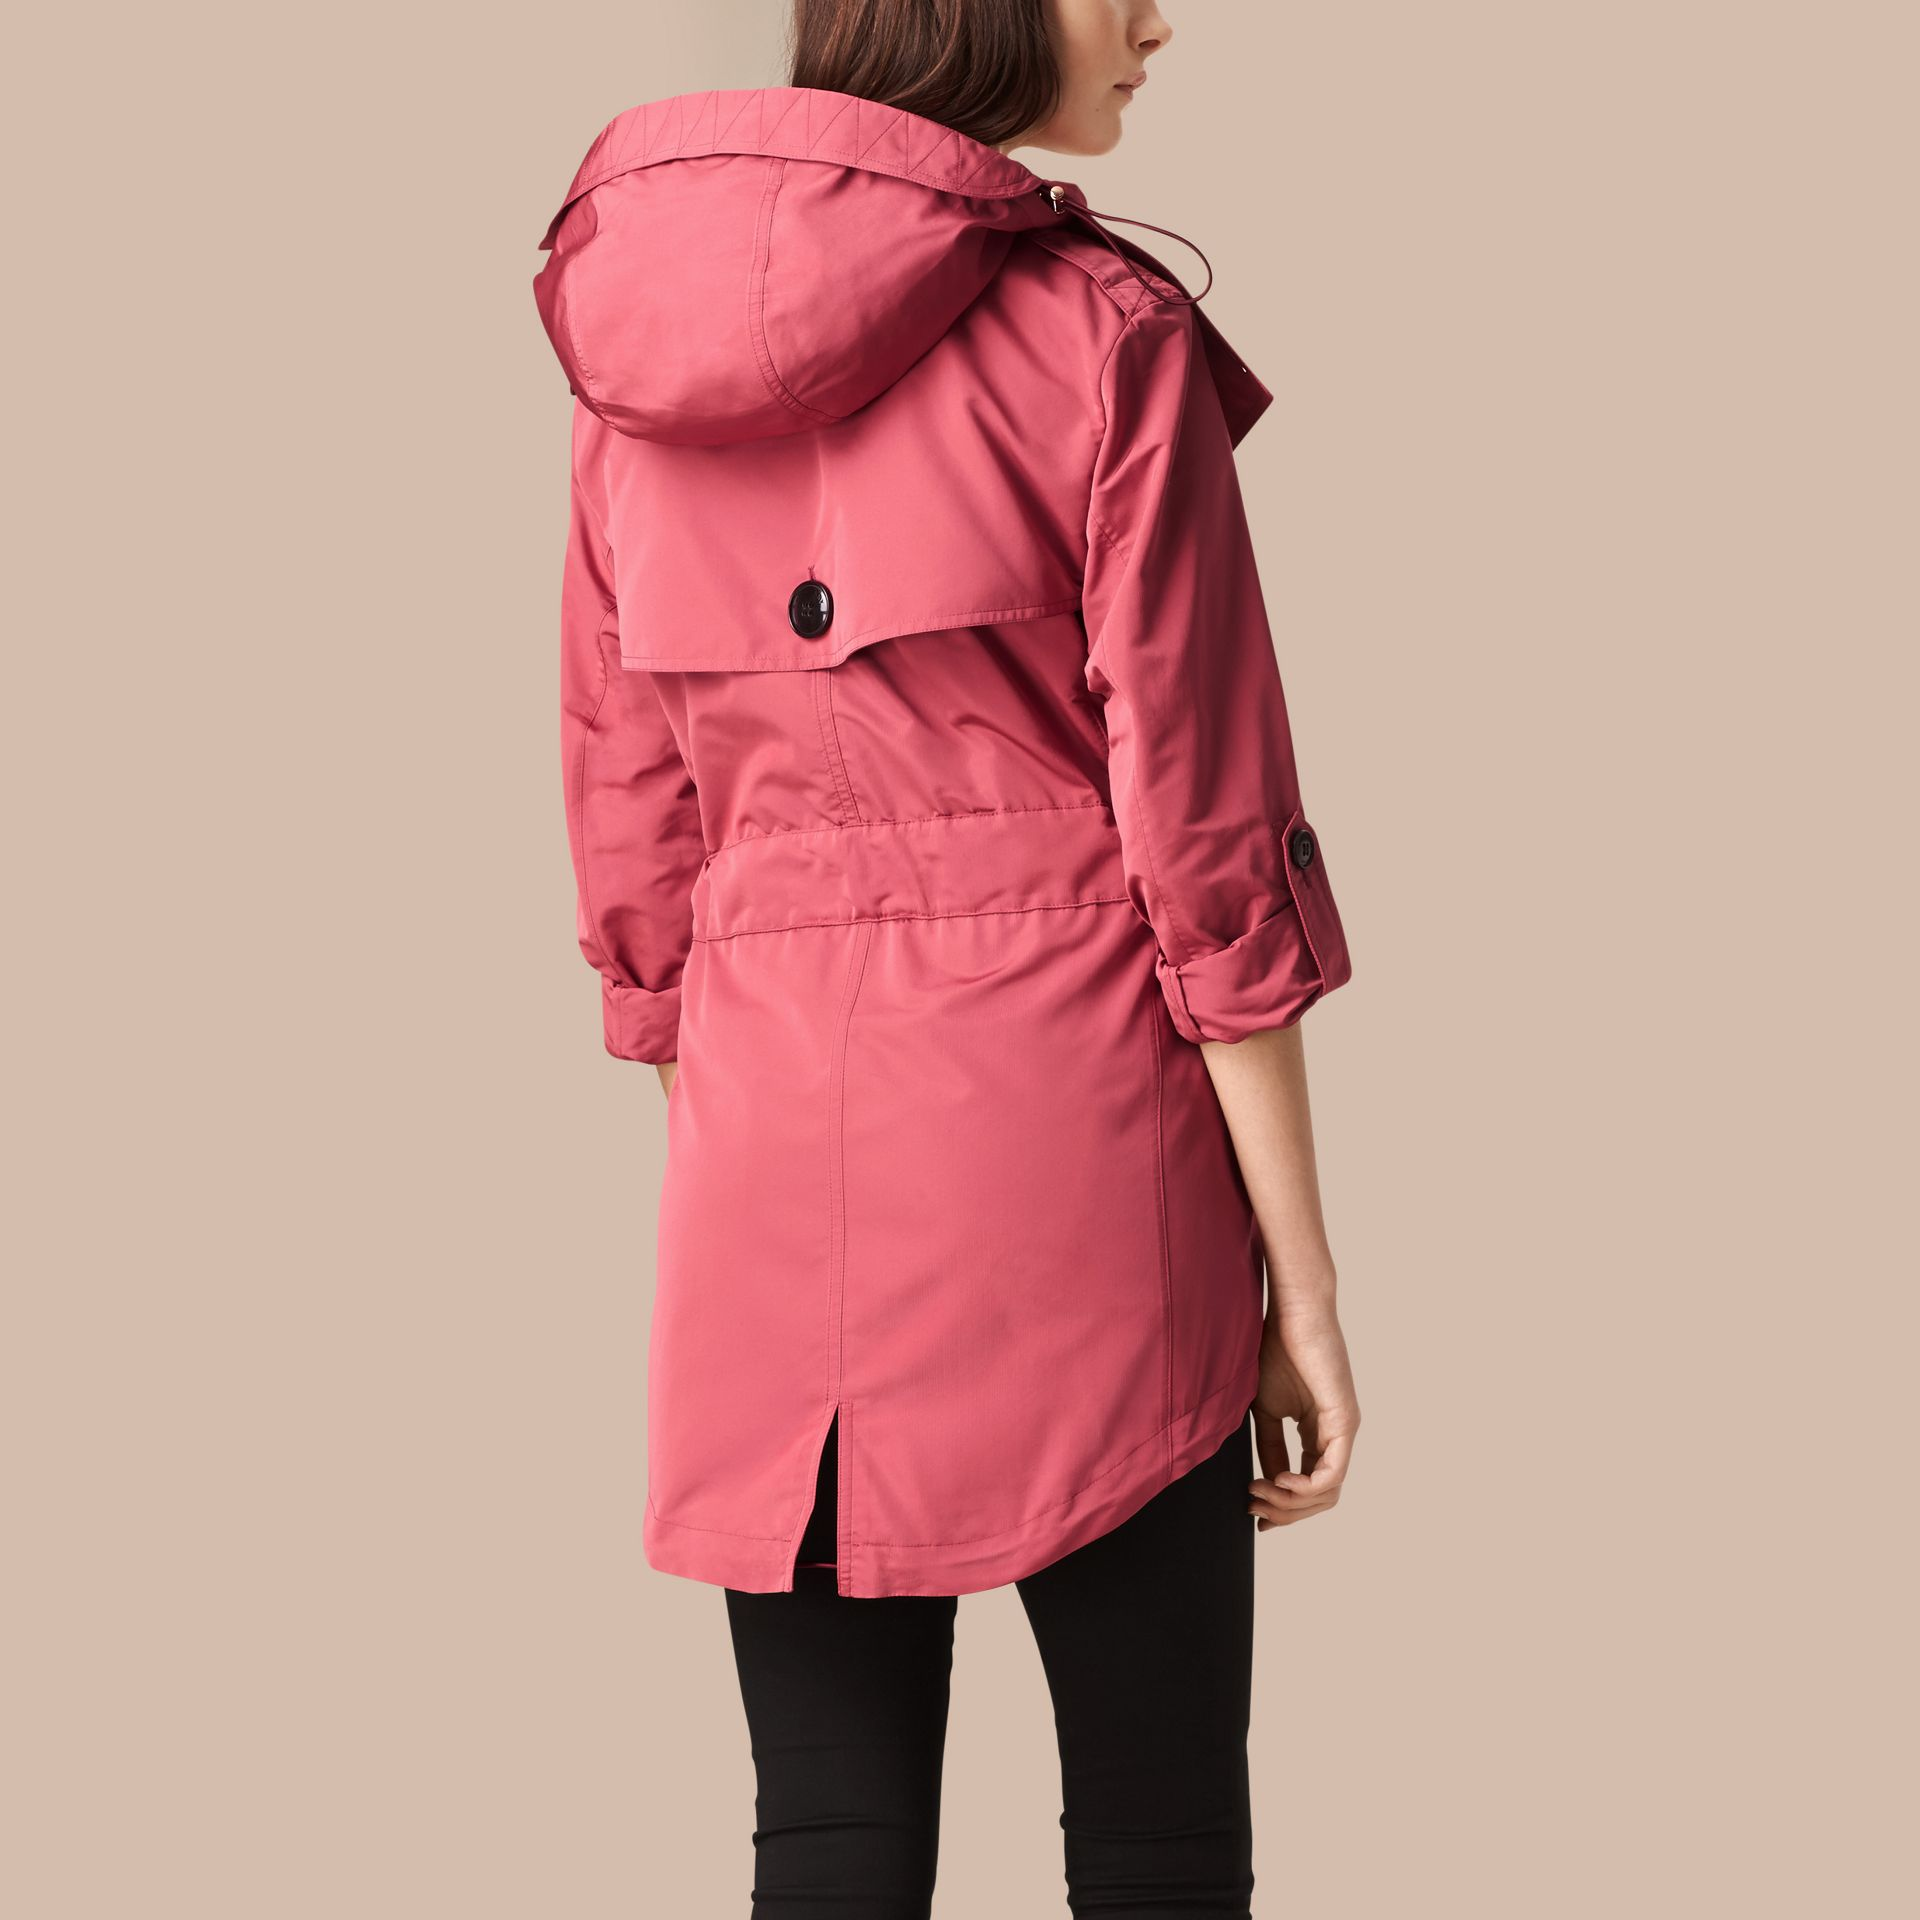 Bright copper pink Showerproof Trench Coat with Detachable Hood Bright Copper Pink - gallery image 3